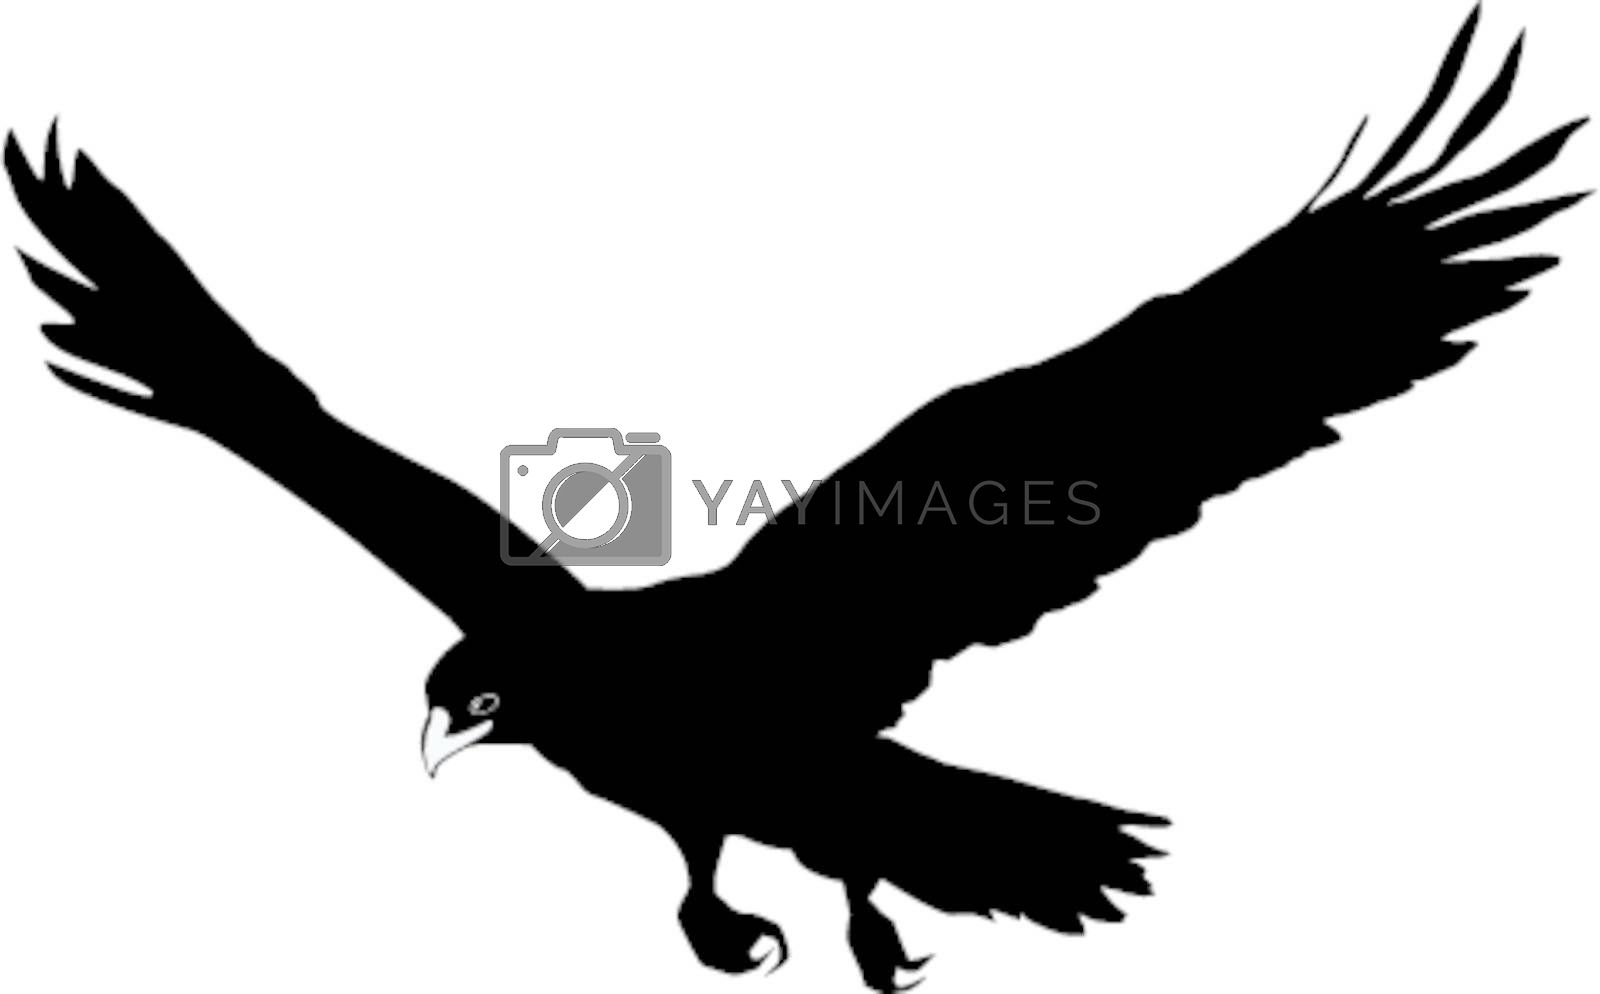 Illustration in style of black silhouette of golden eagle